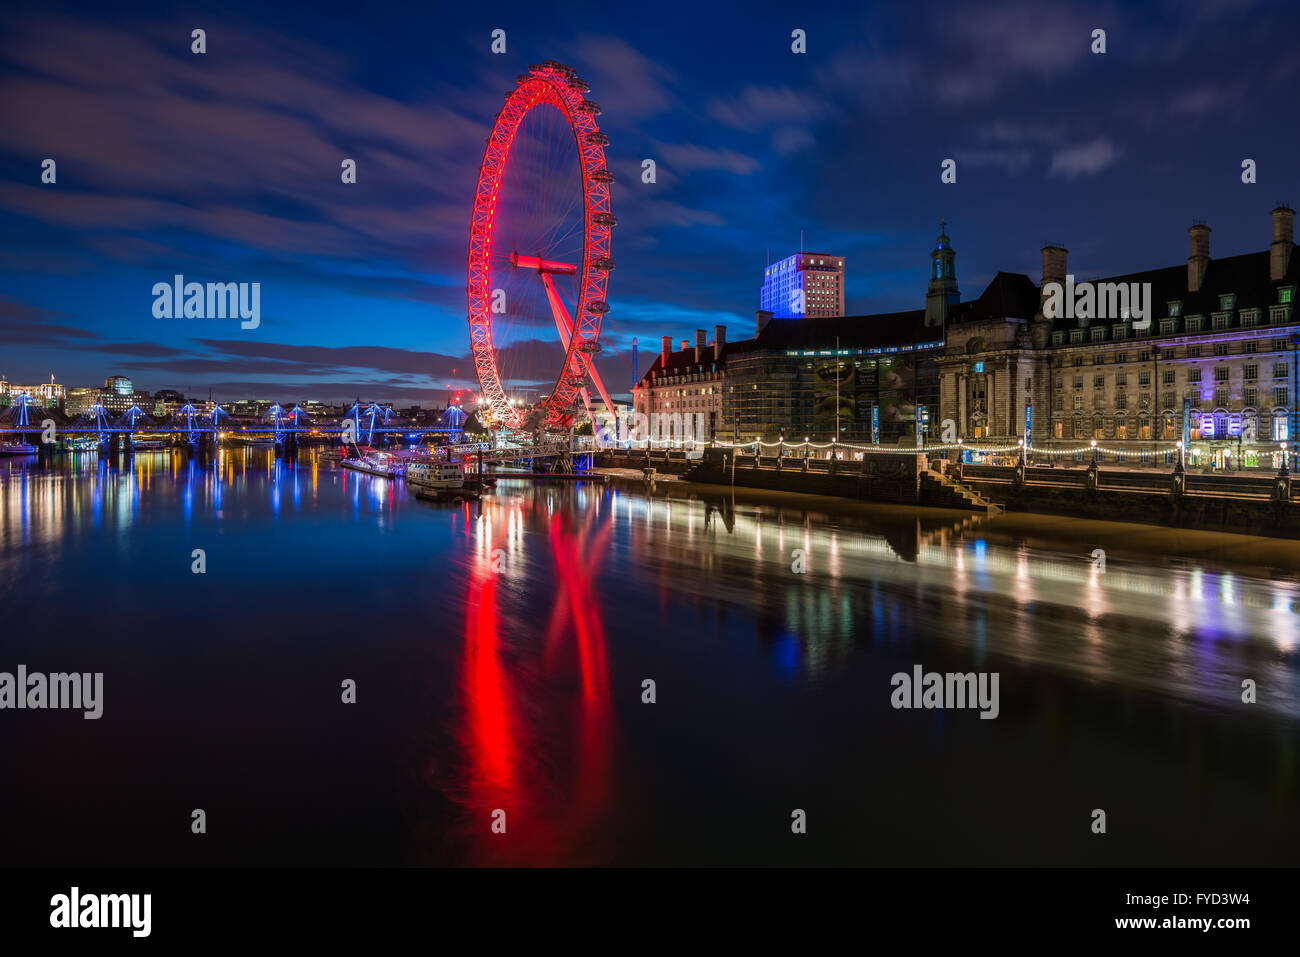 The London Eye, Southbank, seen from the Westminster Bridge, London, United Kingdom - Stock Image